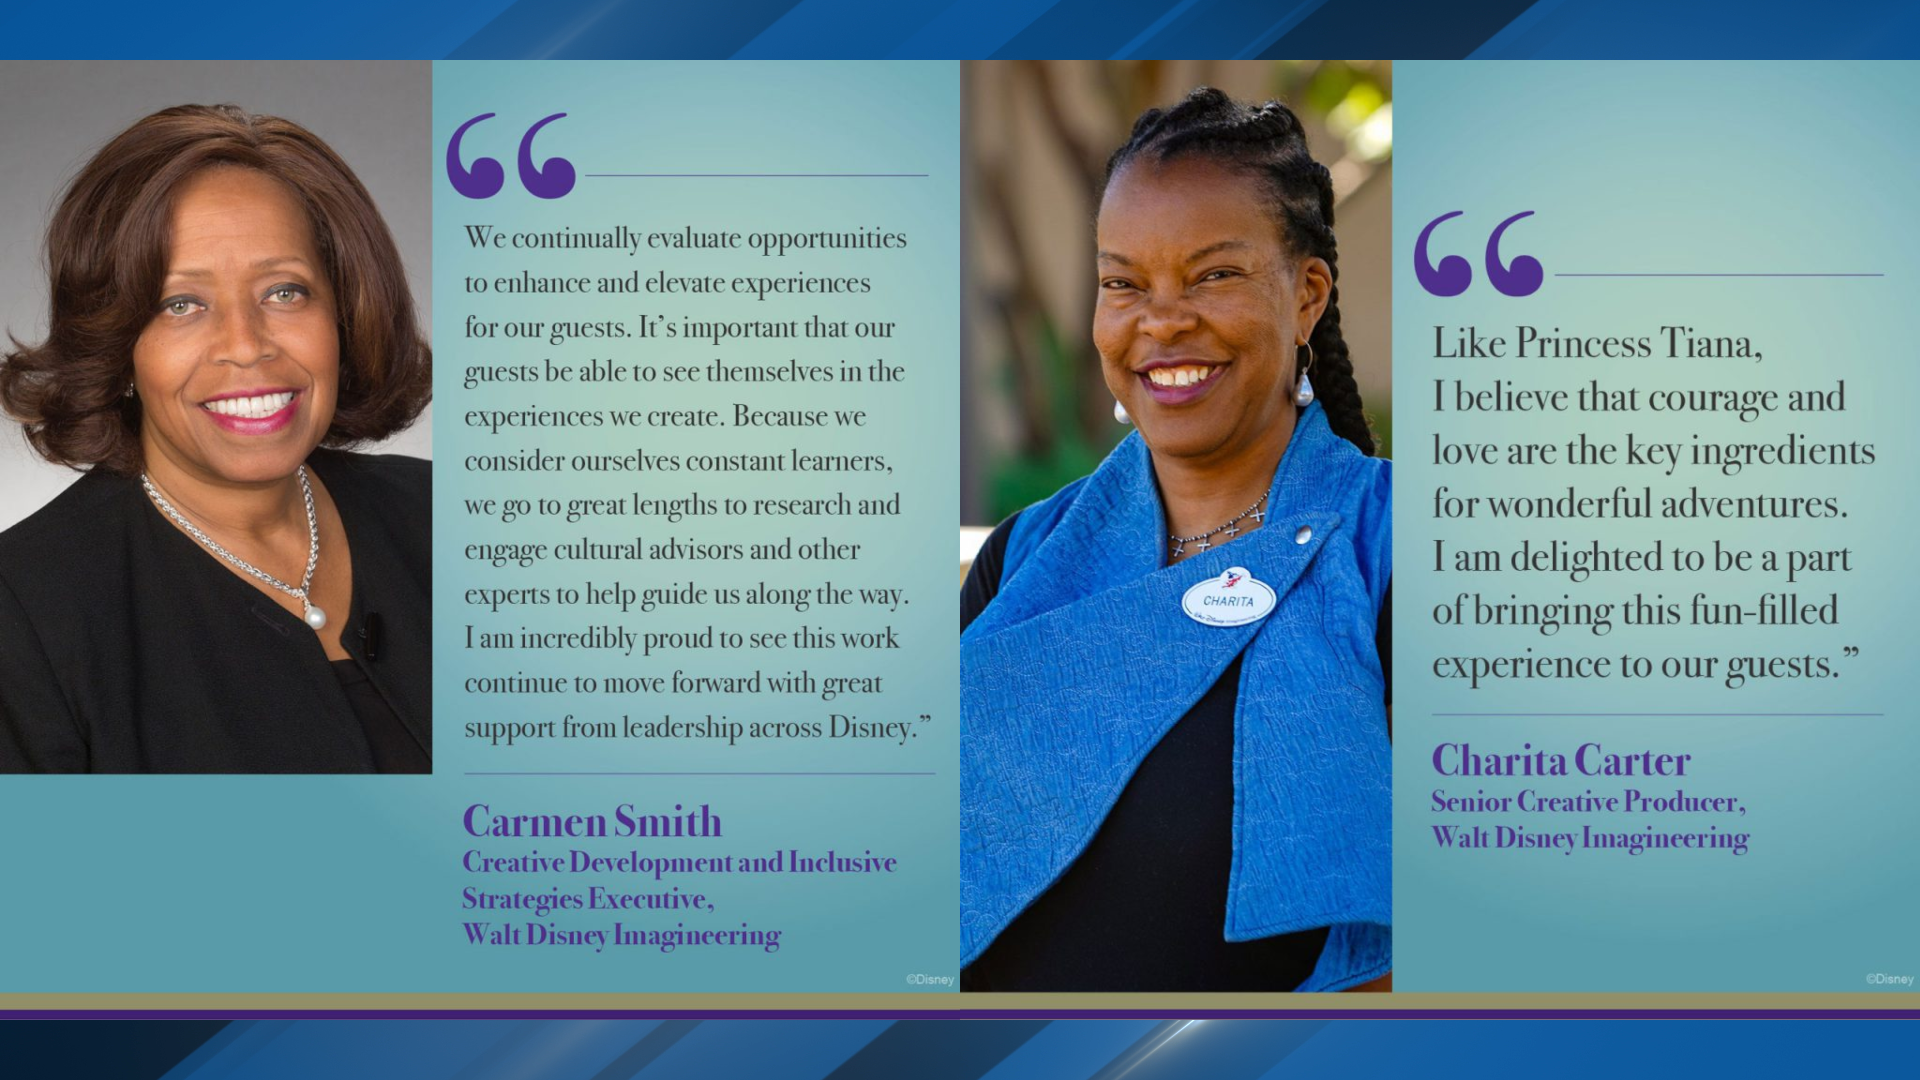 Quote from Carmen Smith, creative development and inclusive strategies executive at Walt Disney Imagineering.{&nbsp;}<br><p>AND{&nbsp;}<br>Quote from Charita Carter, senior creative producer at Walt Disney Imagineering. (Disney)<br></p>